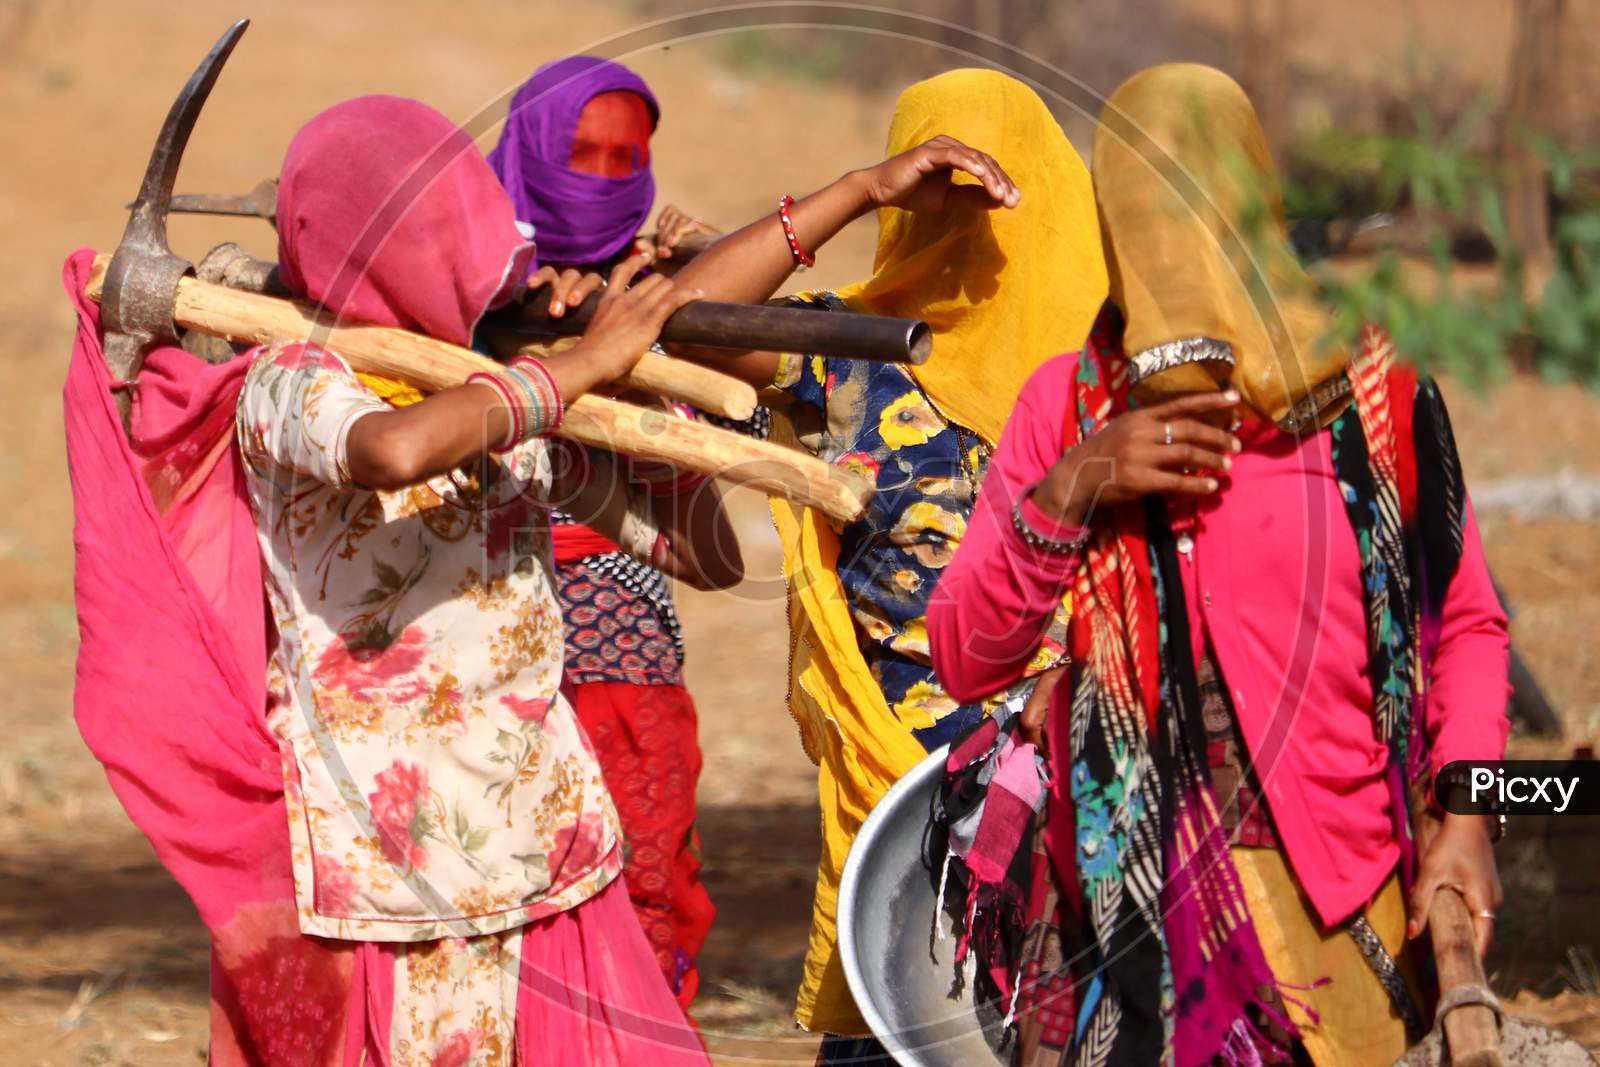 Labourers Going For Works Under The Mahatma Gandhi National Rural Employment Guarantee Act (Mgnrega) On A Outskirts Of Ajmer, Rajasthan, India On 19 May 2020.